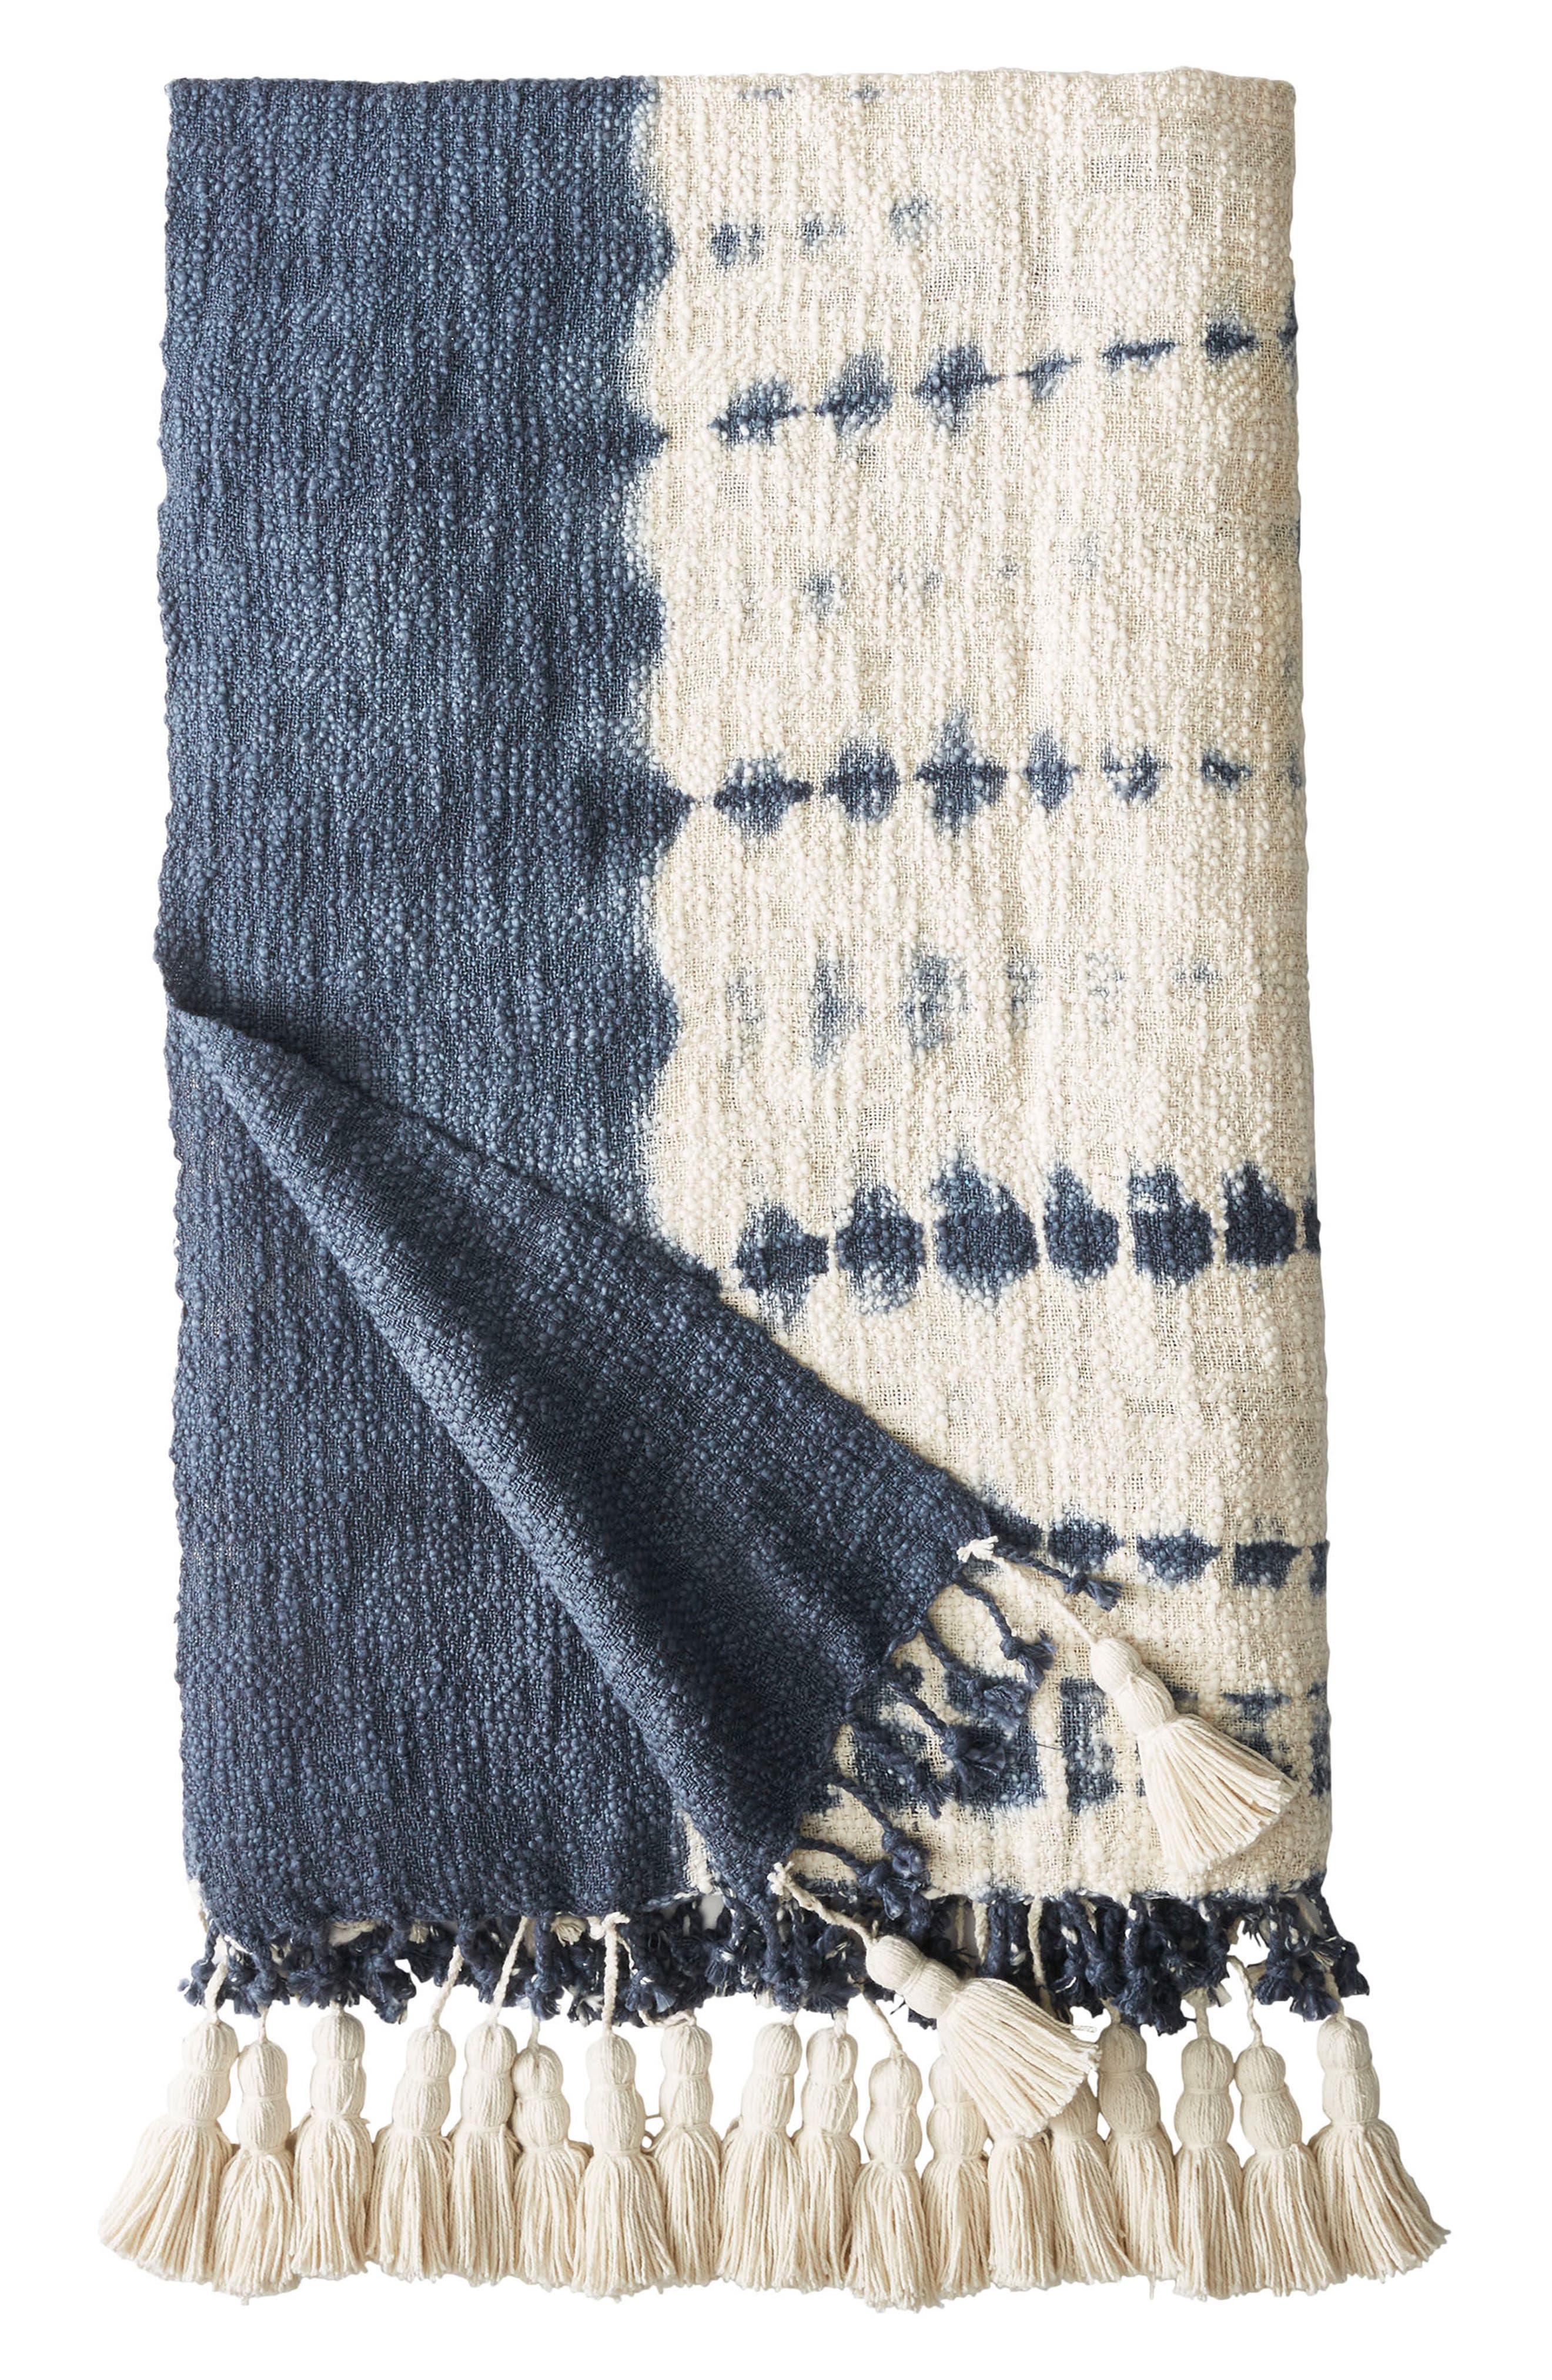 Island Indigo Throw Blanket,                             Main thumbnail 1, color,                             Navy/ Cream